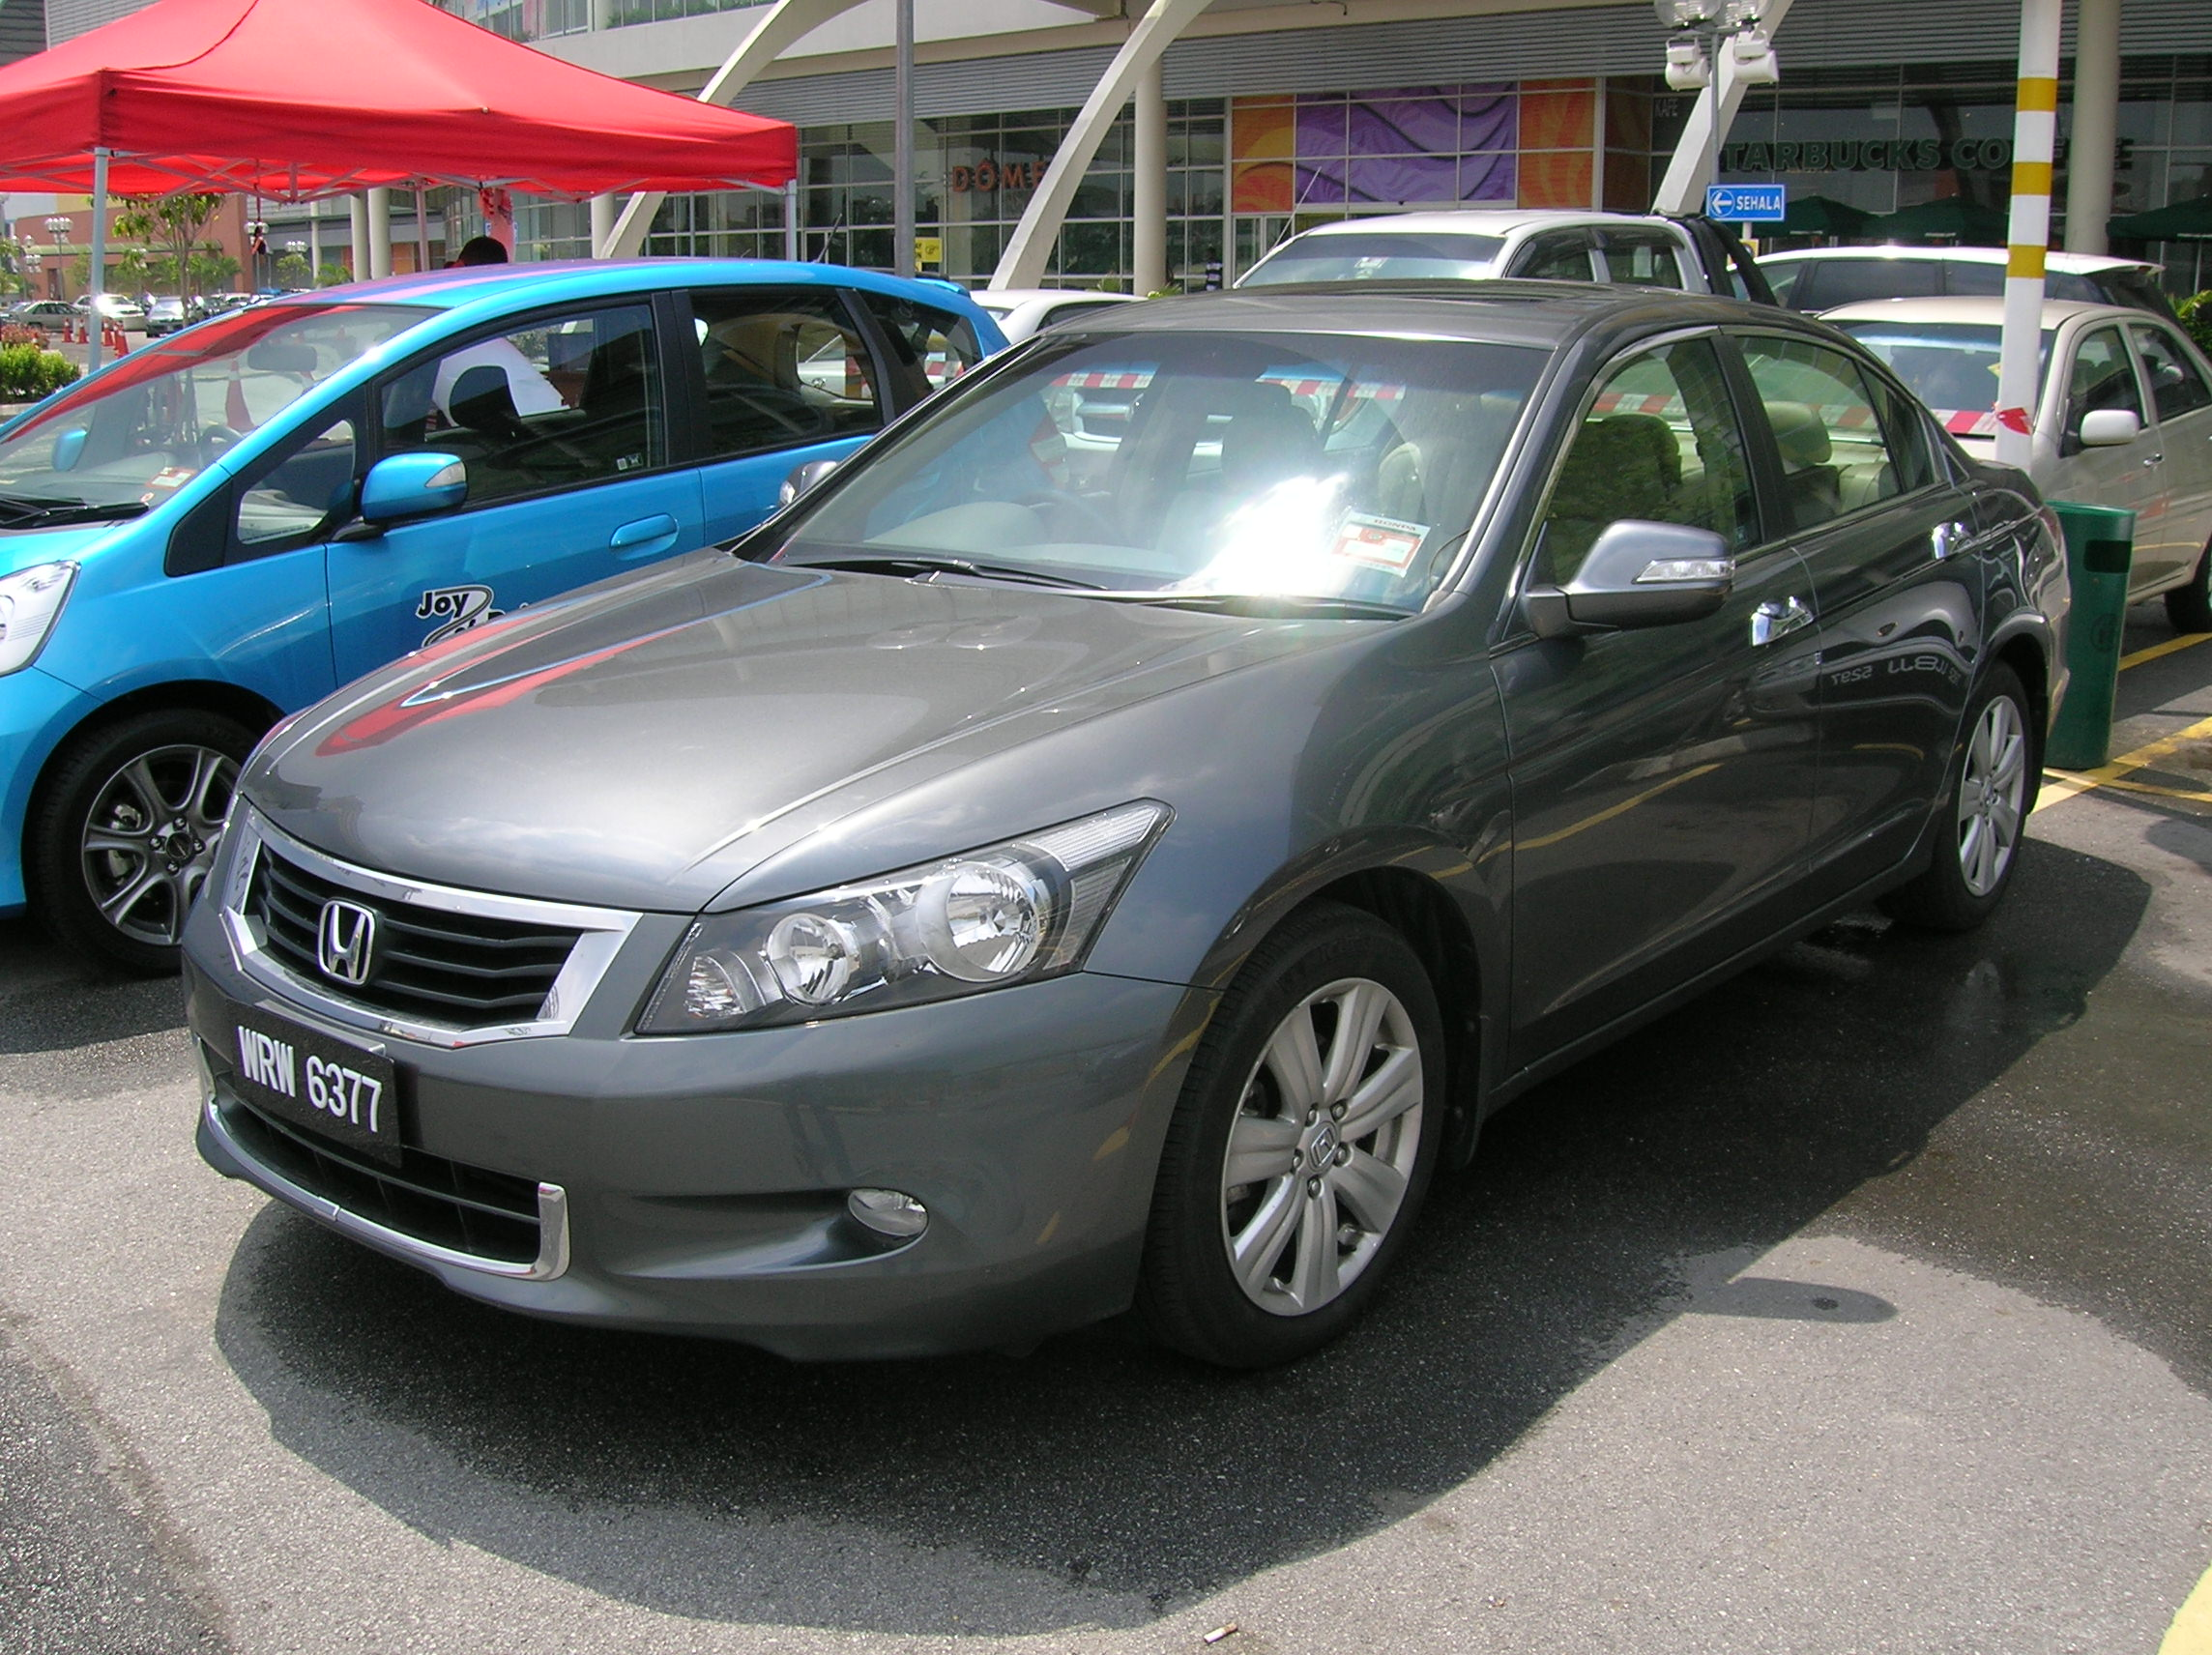 The Honda Accord